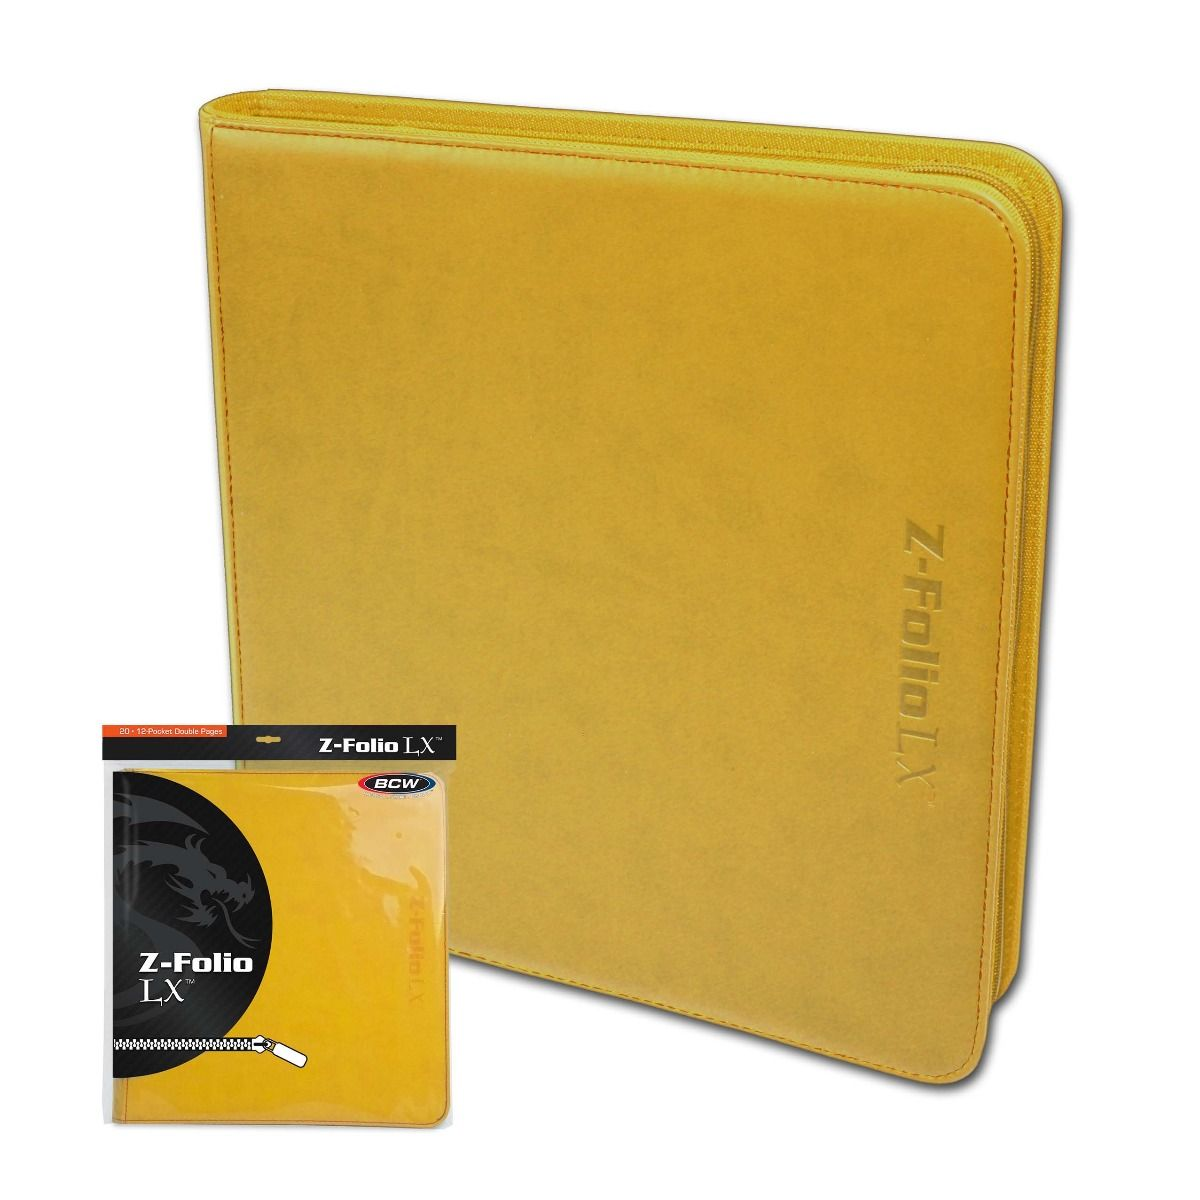 Z-Folio 12-Pocket LX Album | MTG Oasis Chile